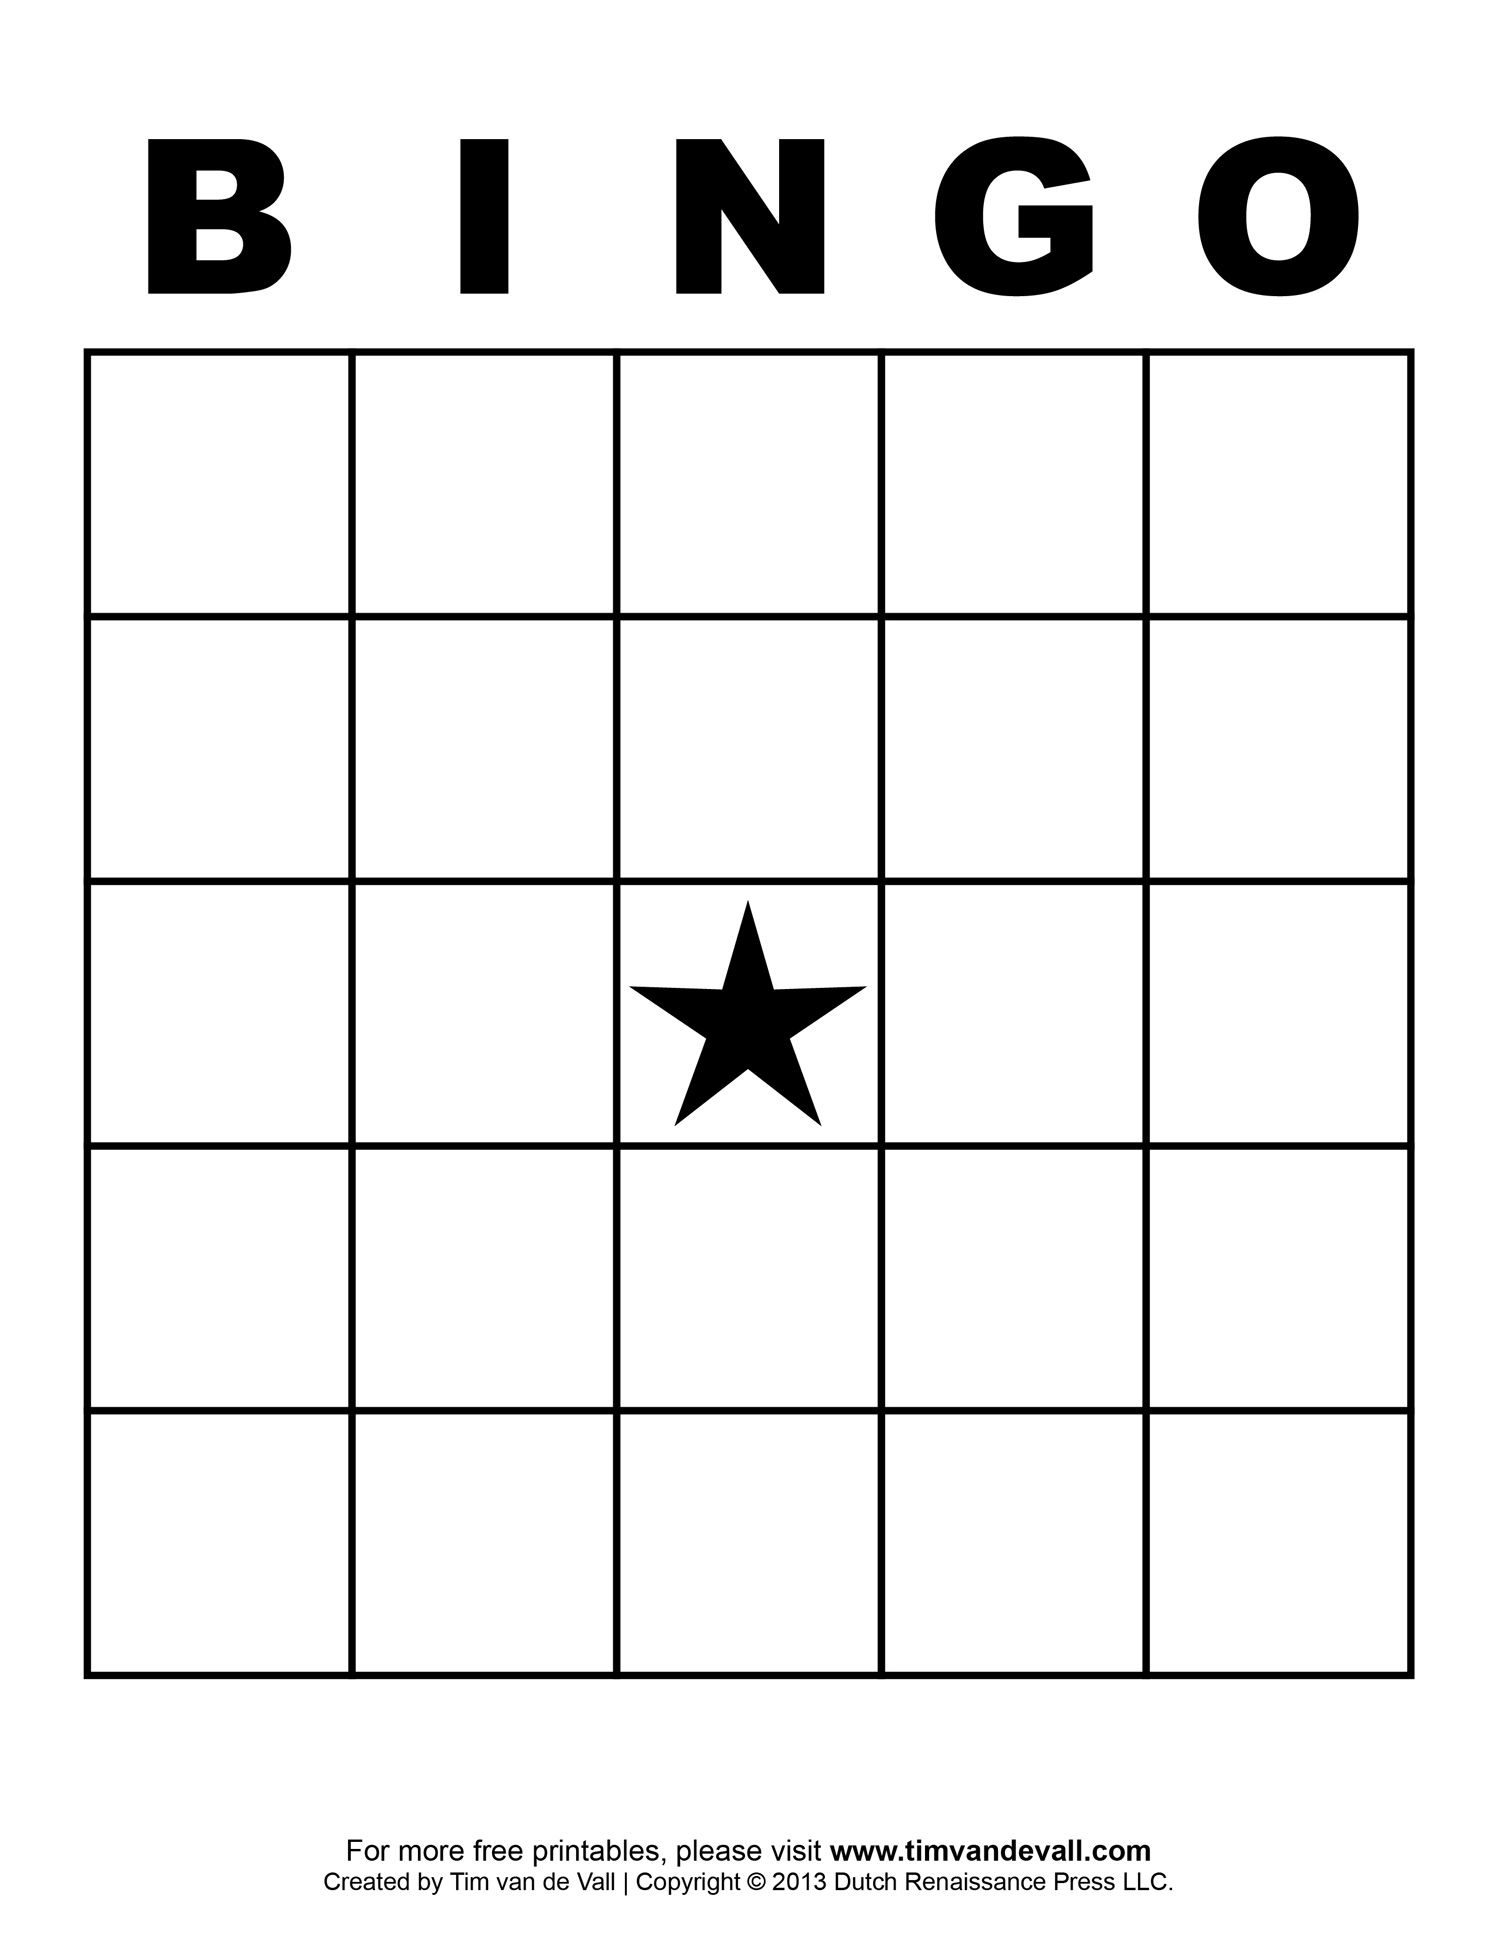 Free Printable Blank Bingo Cards Template 4 X 4 | Classroom | Sight - Free Printable Bingo Cards